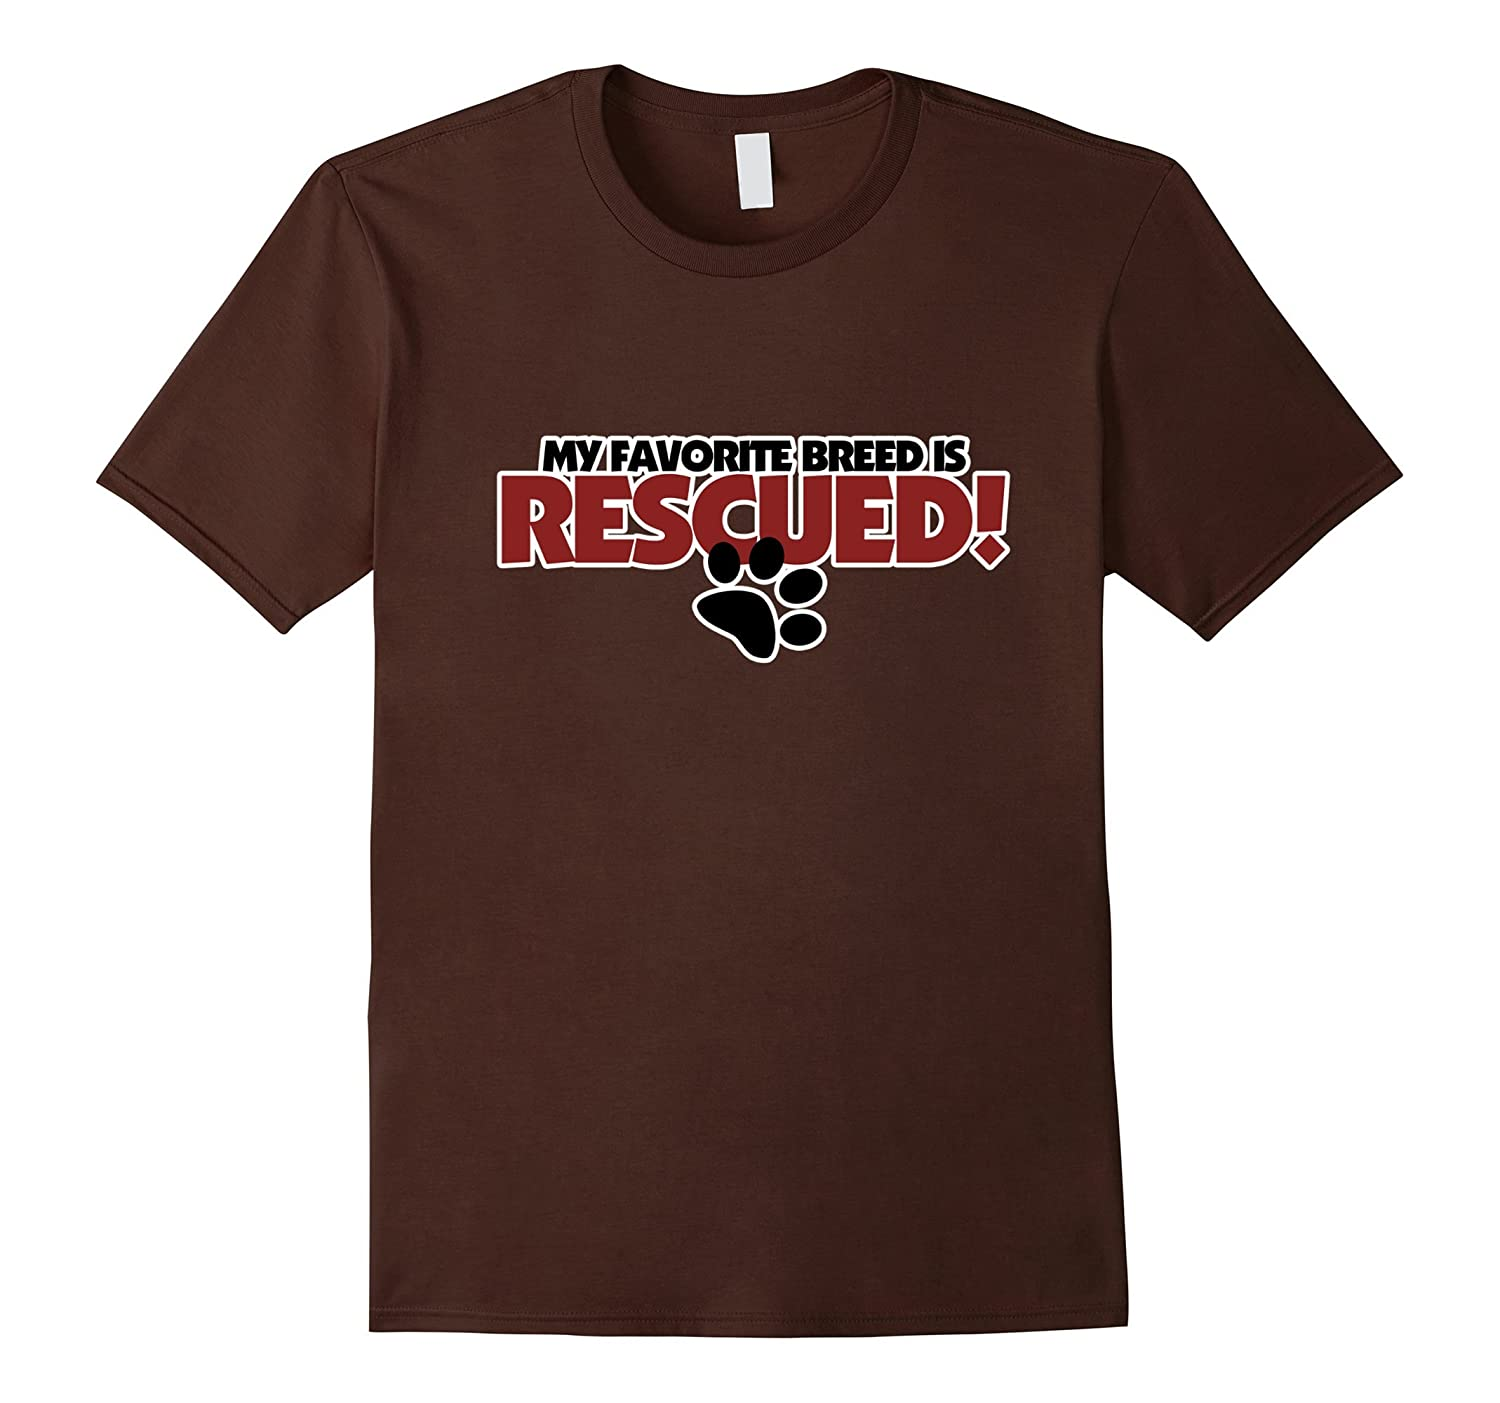 My favorite breed is rescued shirt for shelter dogs-AZP